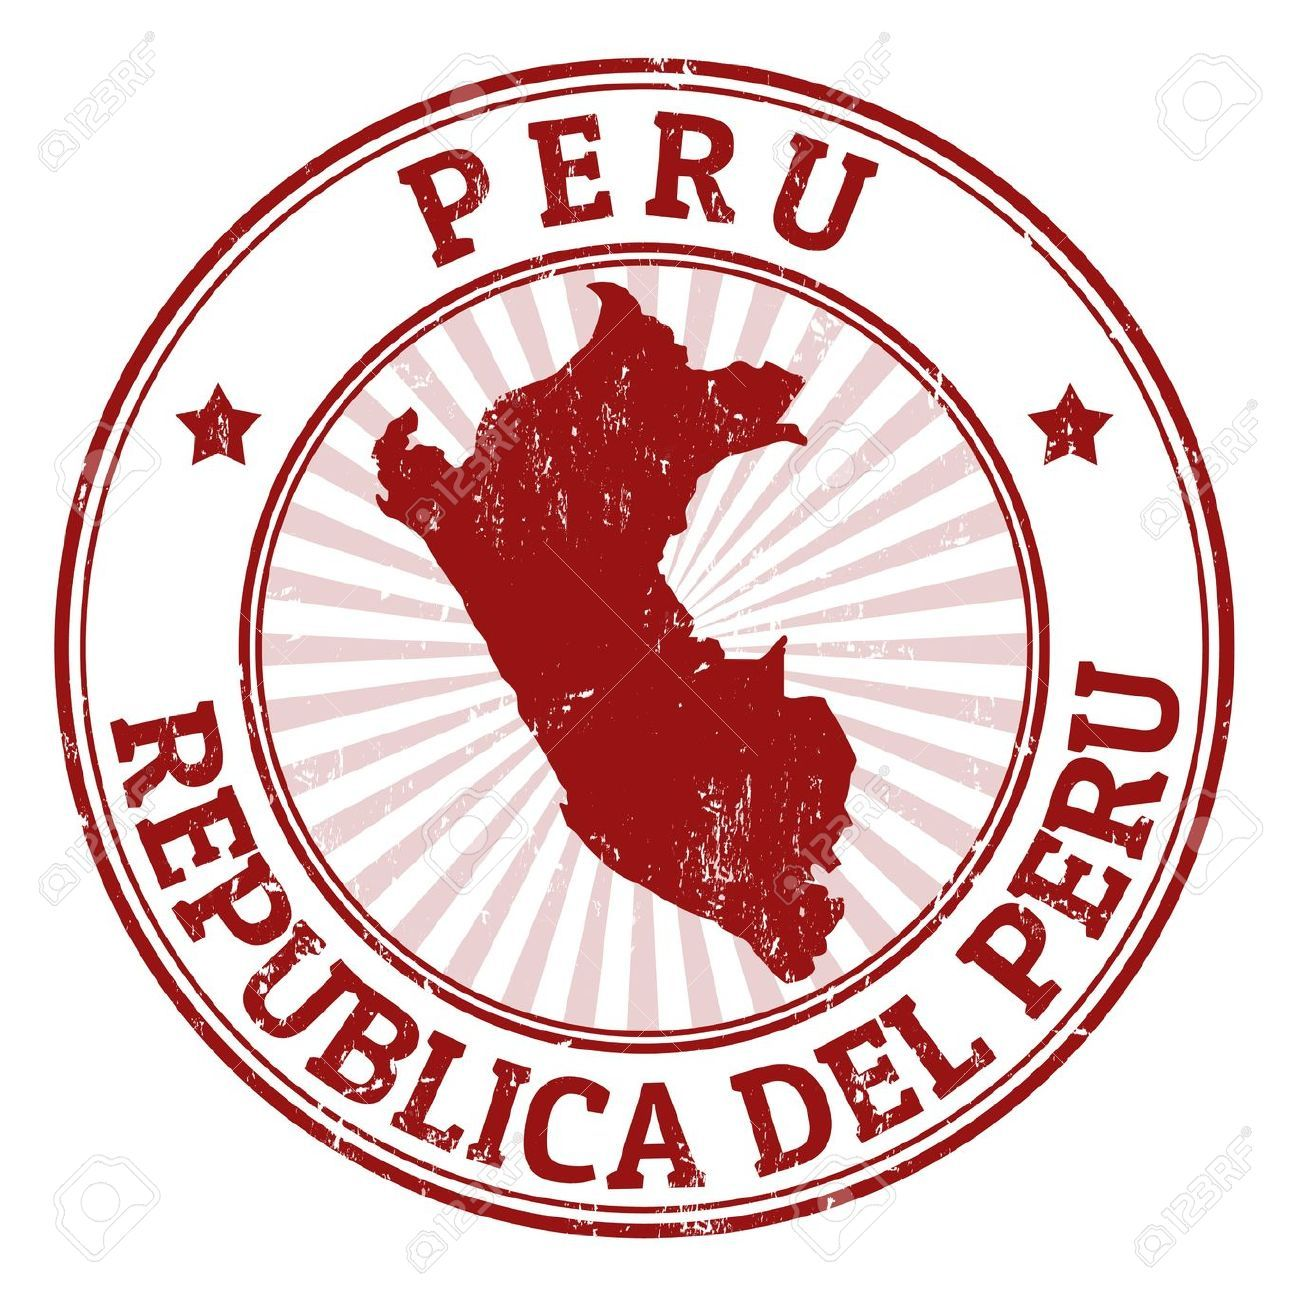 Peru Passport Stamp